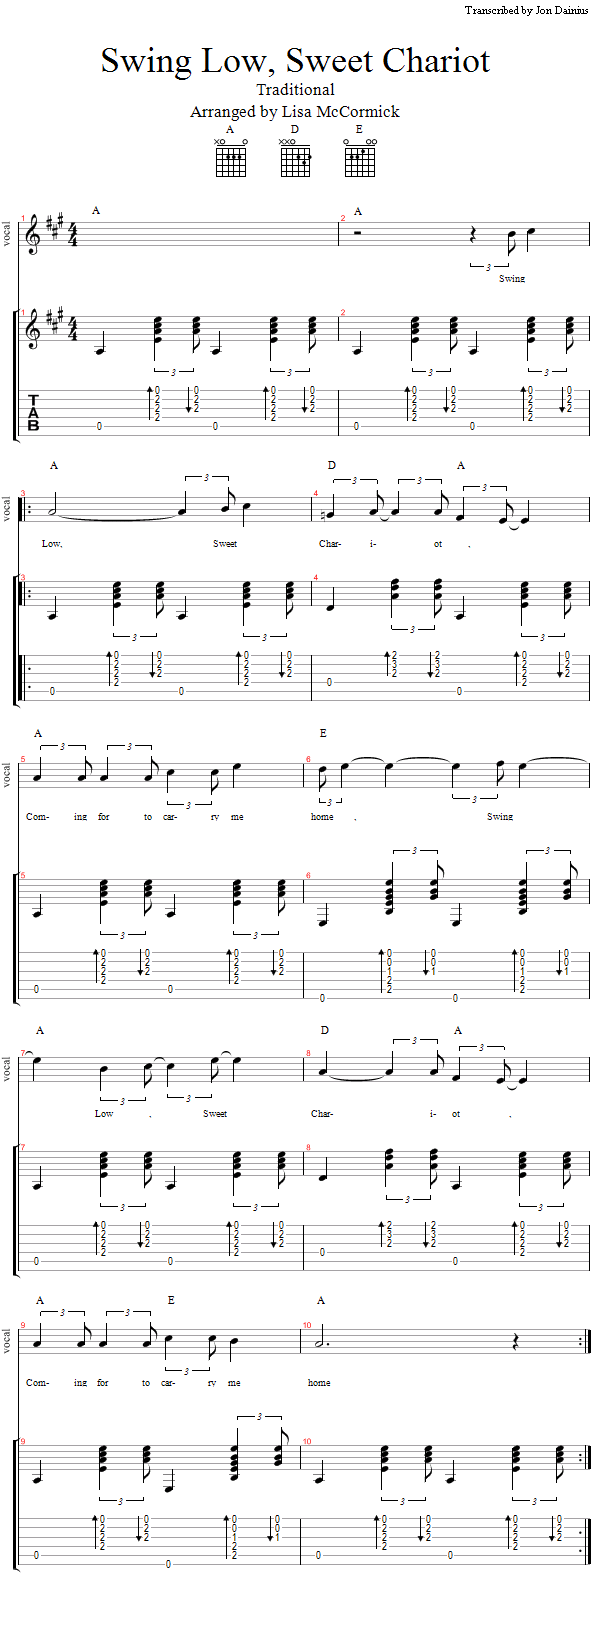 Guitar Lessons Swing Low Sweet Chariot Song To Play